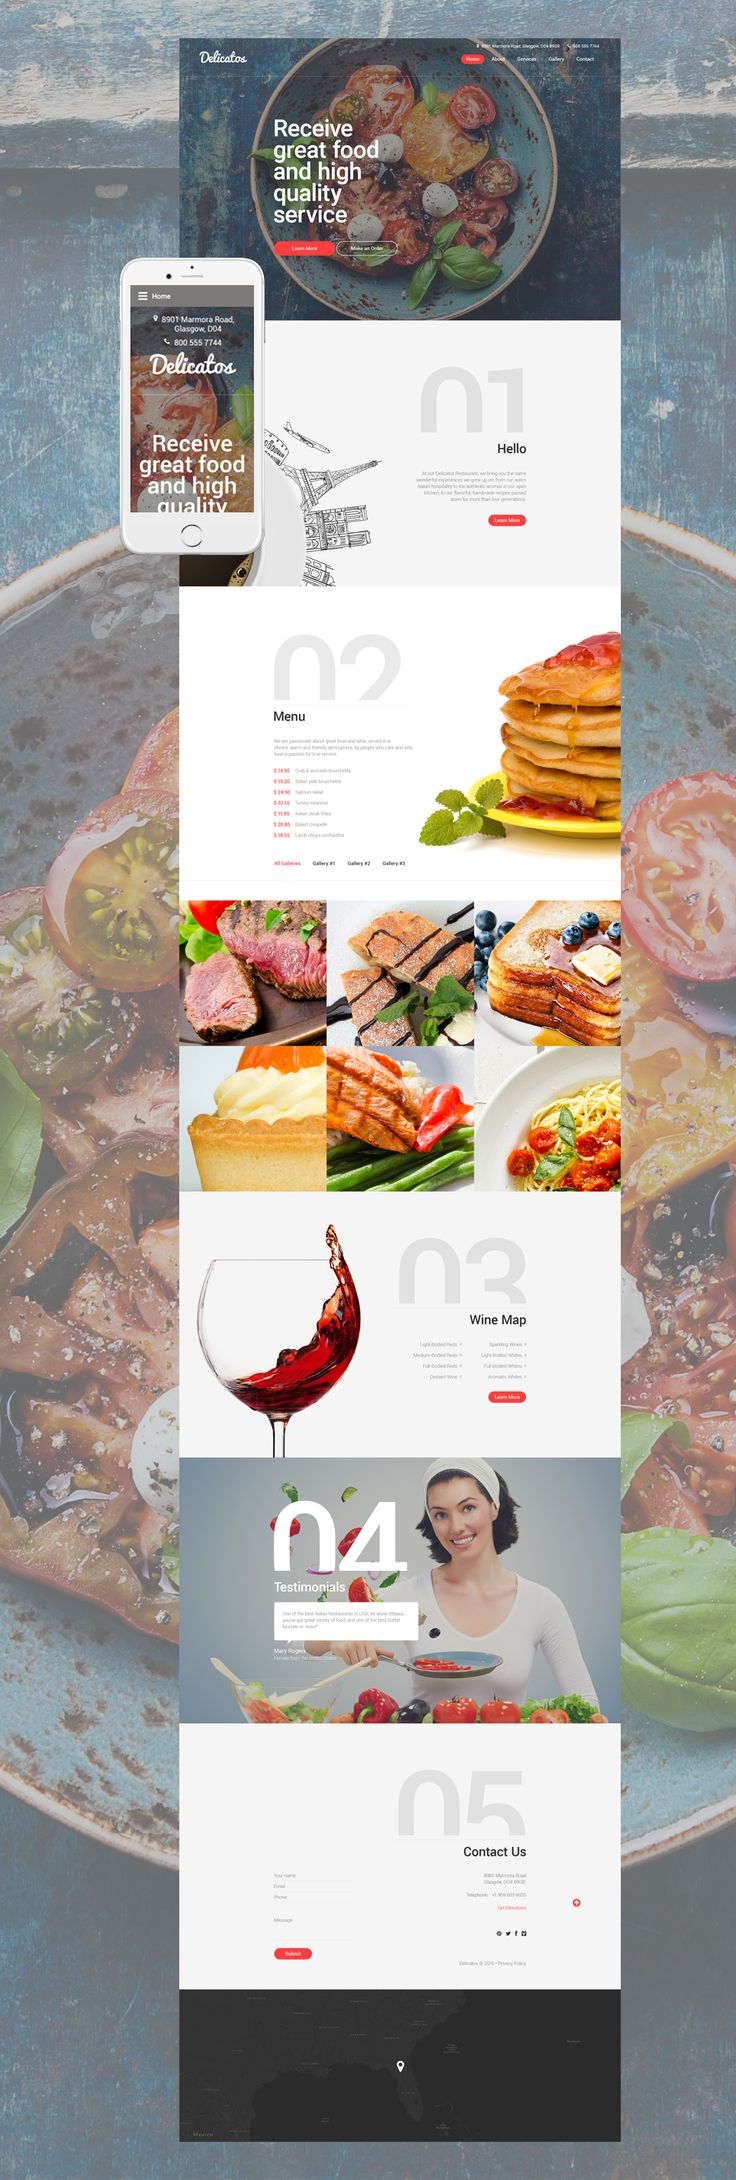 Delicatos is a beautifully designed and well-coded Italian Restaurant Web…